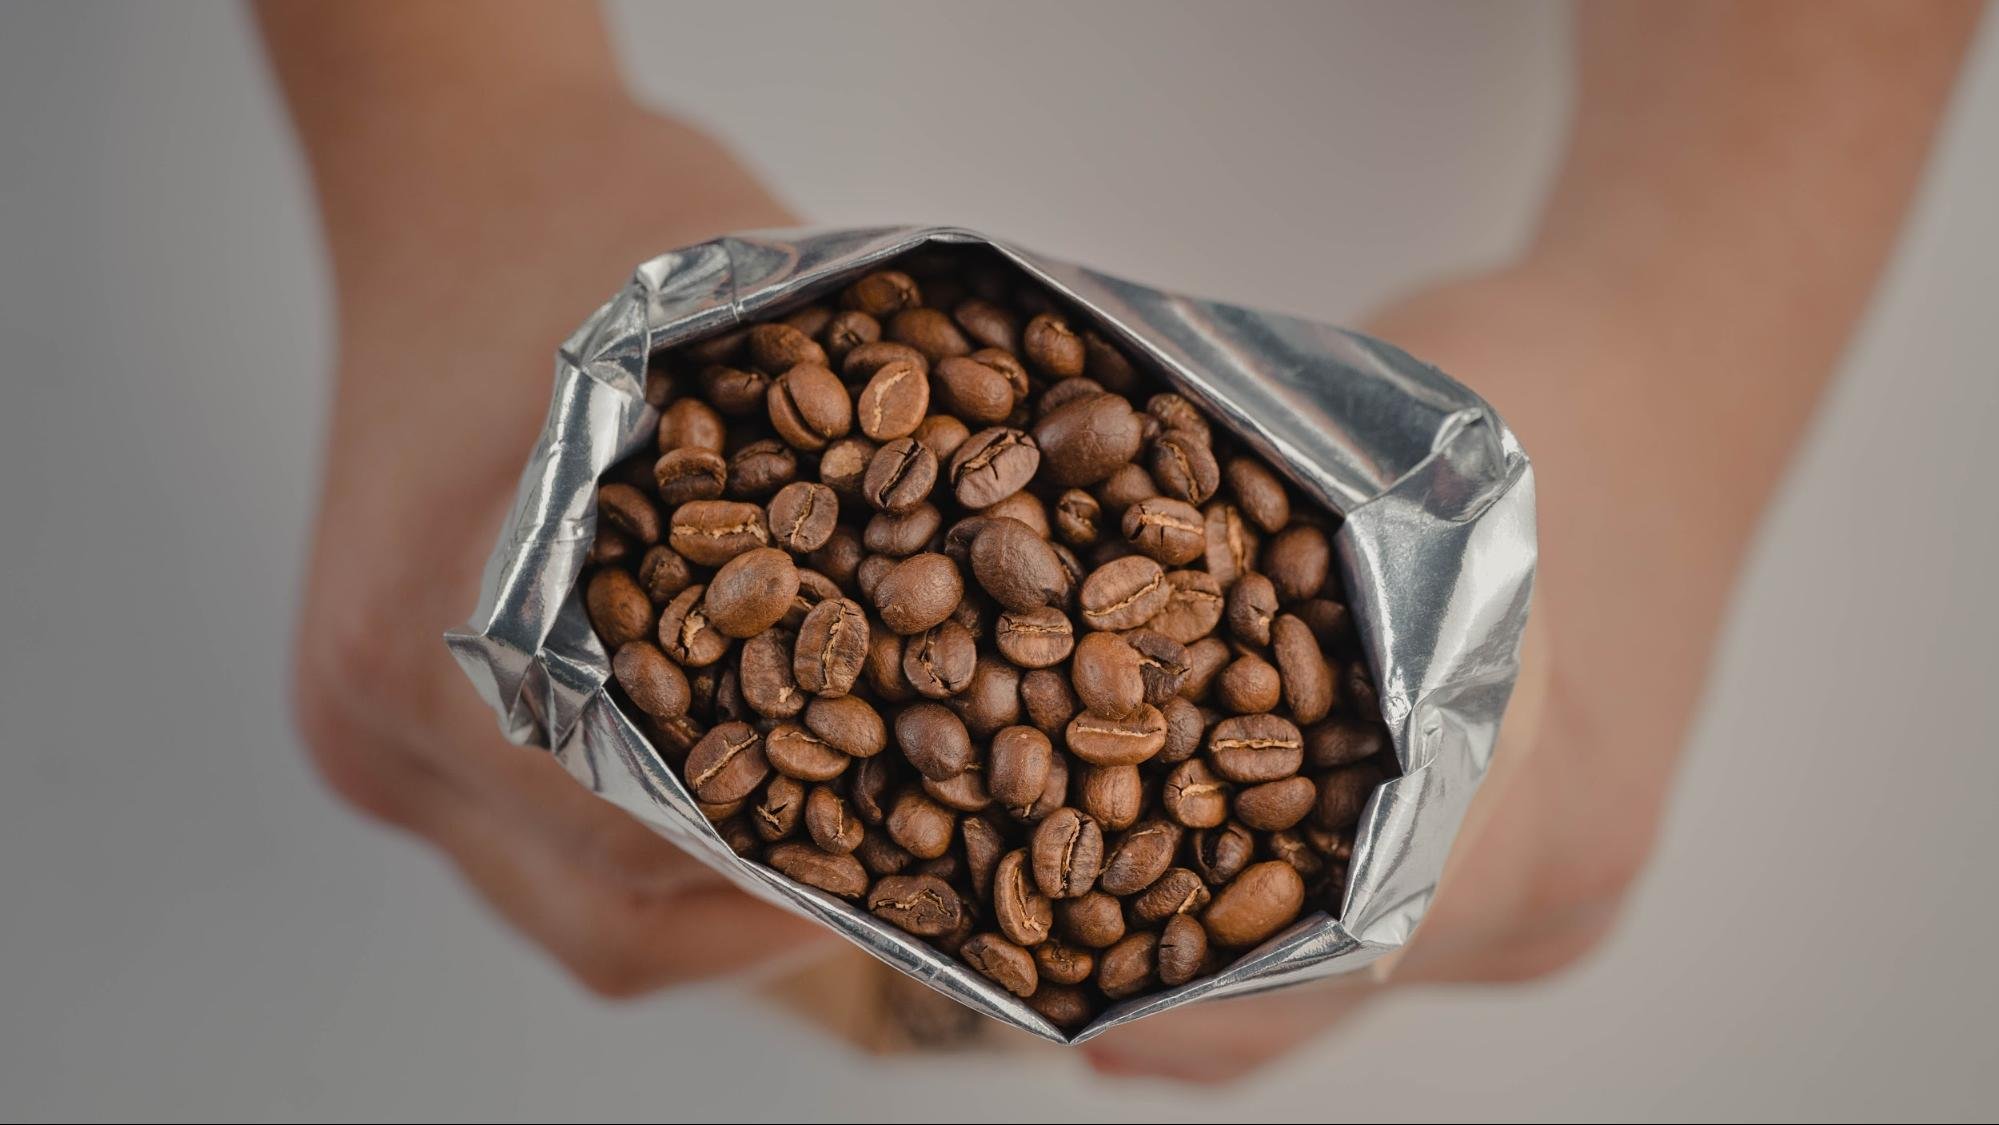 What's The Best Packaging For Storing Coffee At Home?